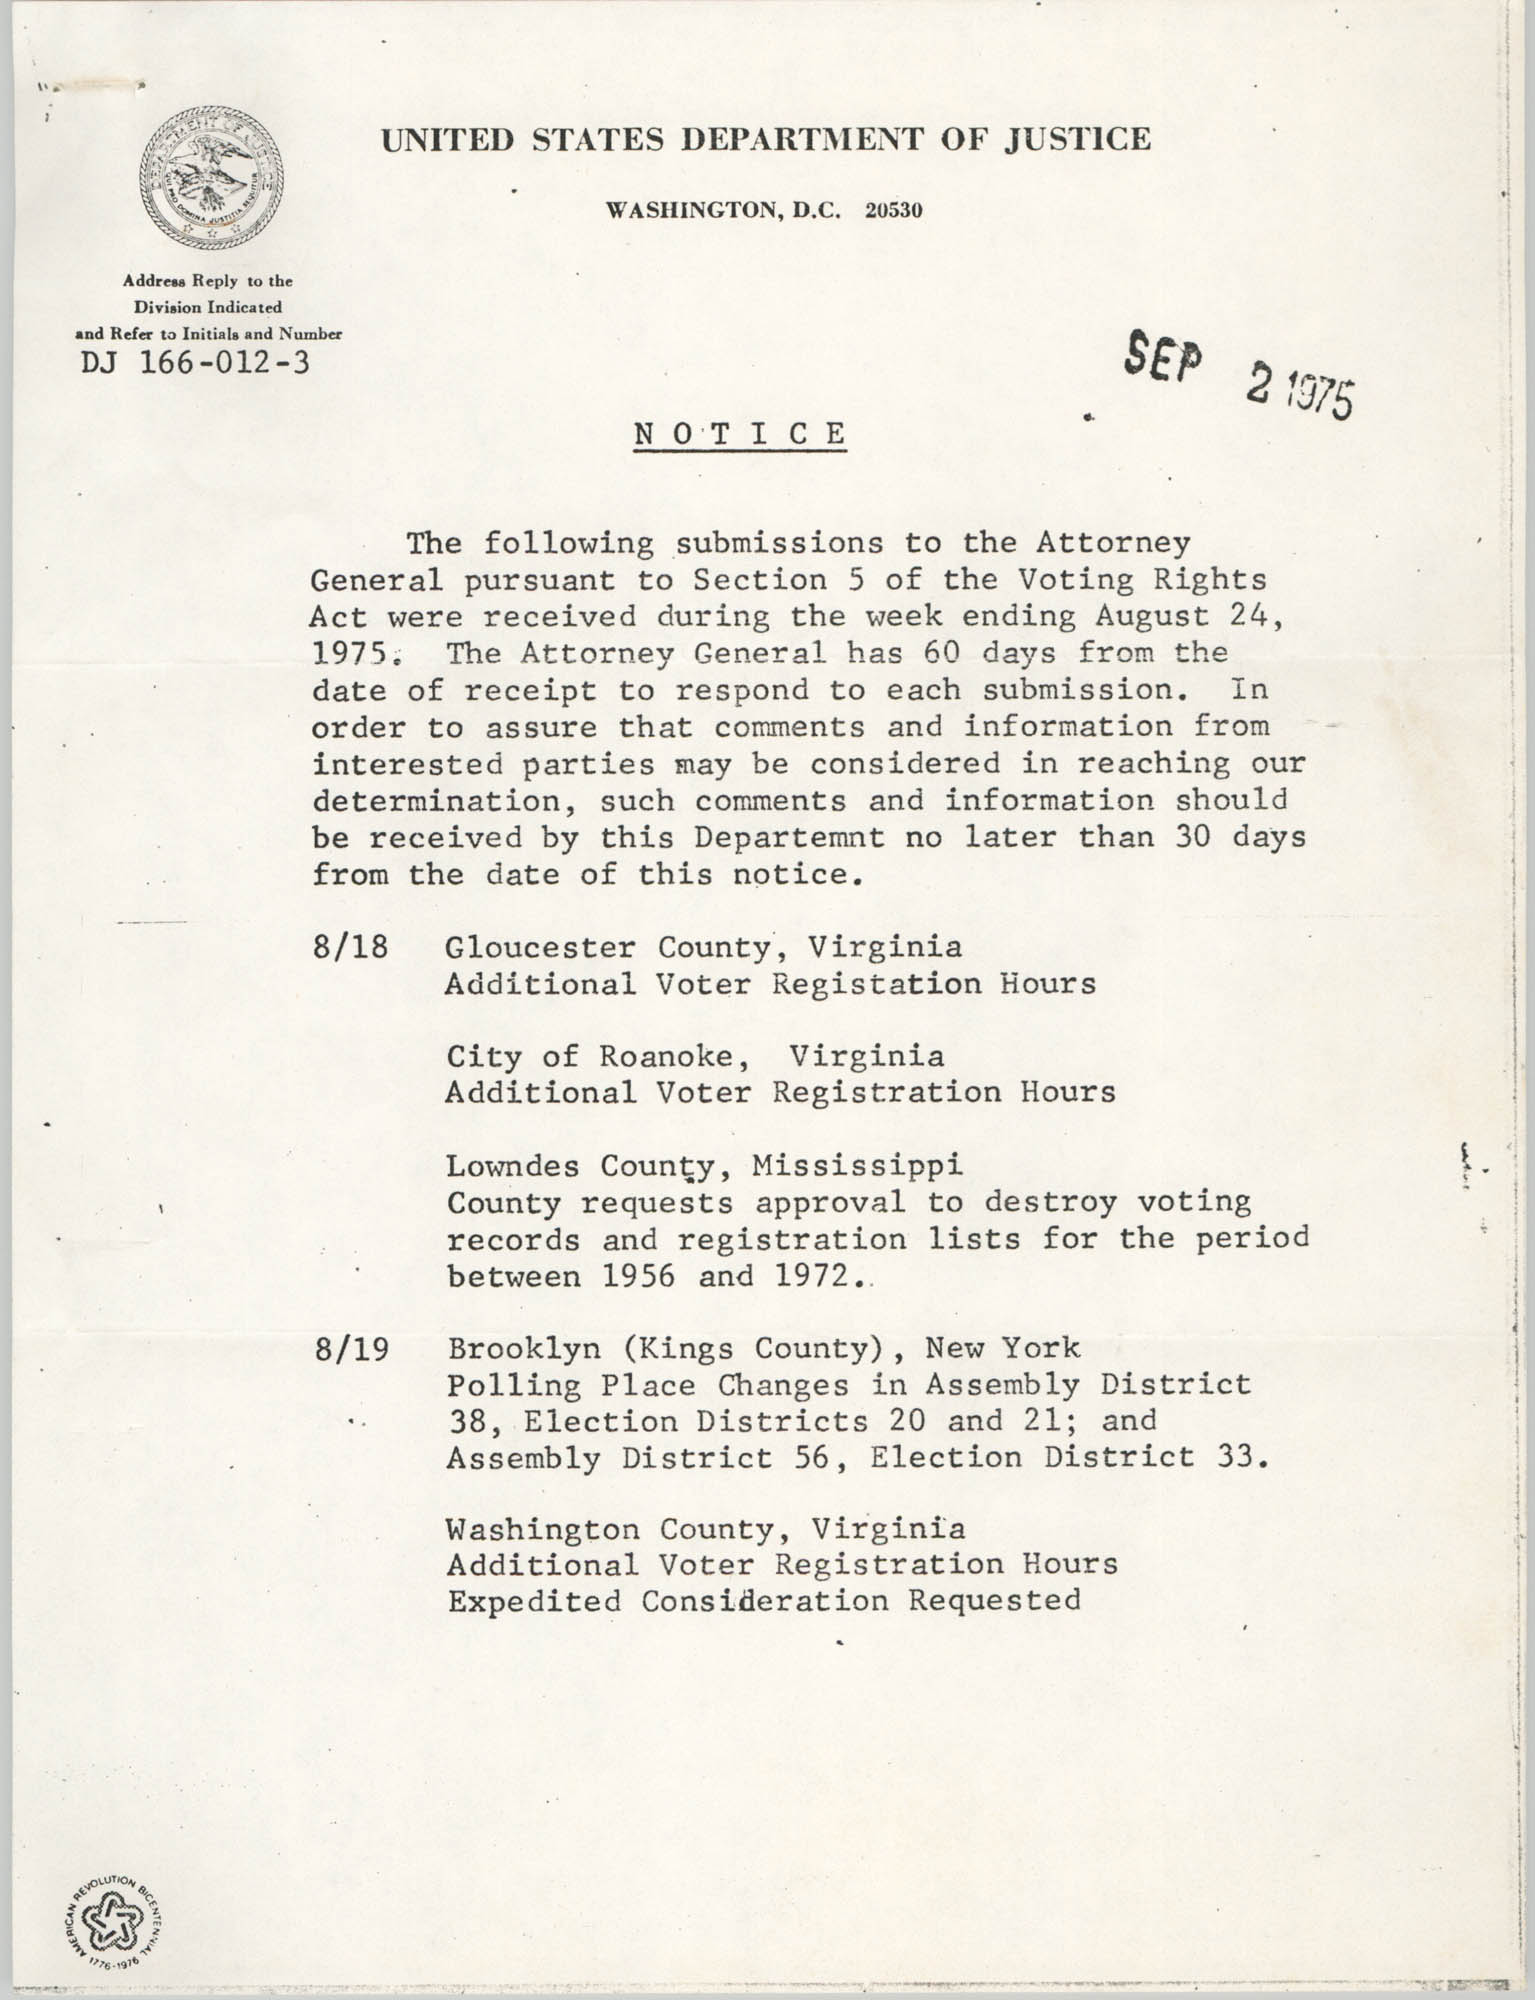 United States Department of Justice Notice, September 2, 1975